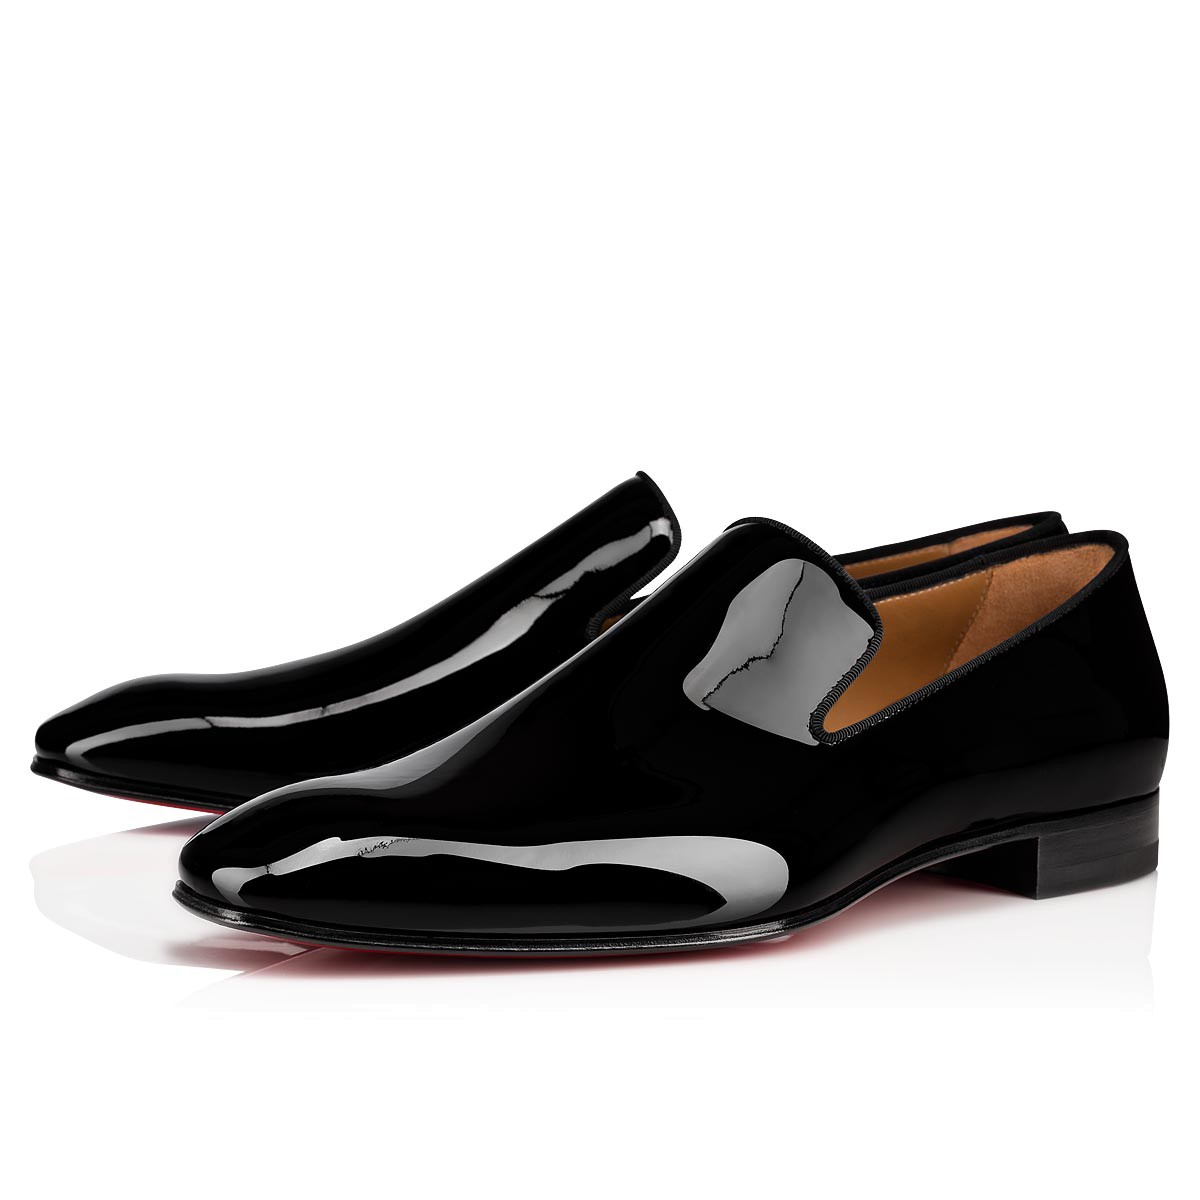 christian louboutin shoes discount